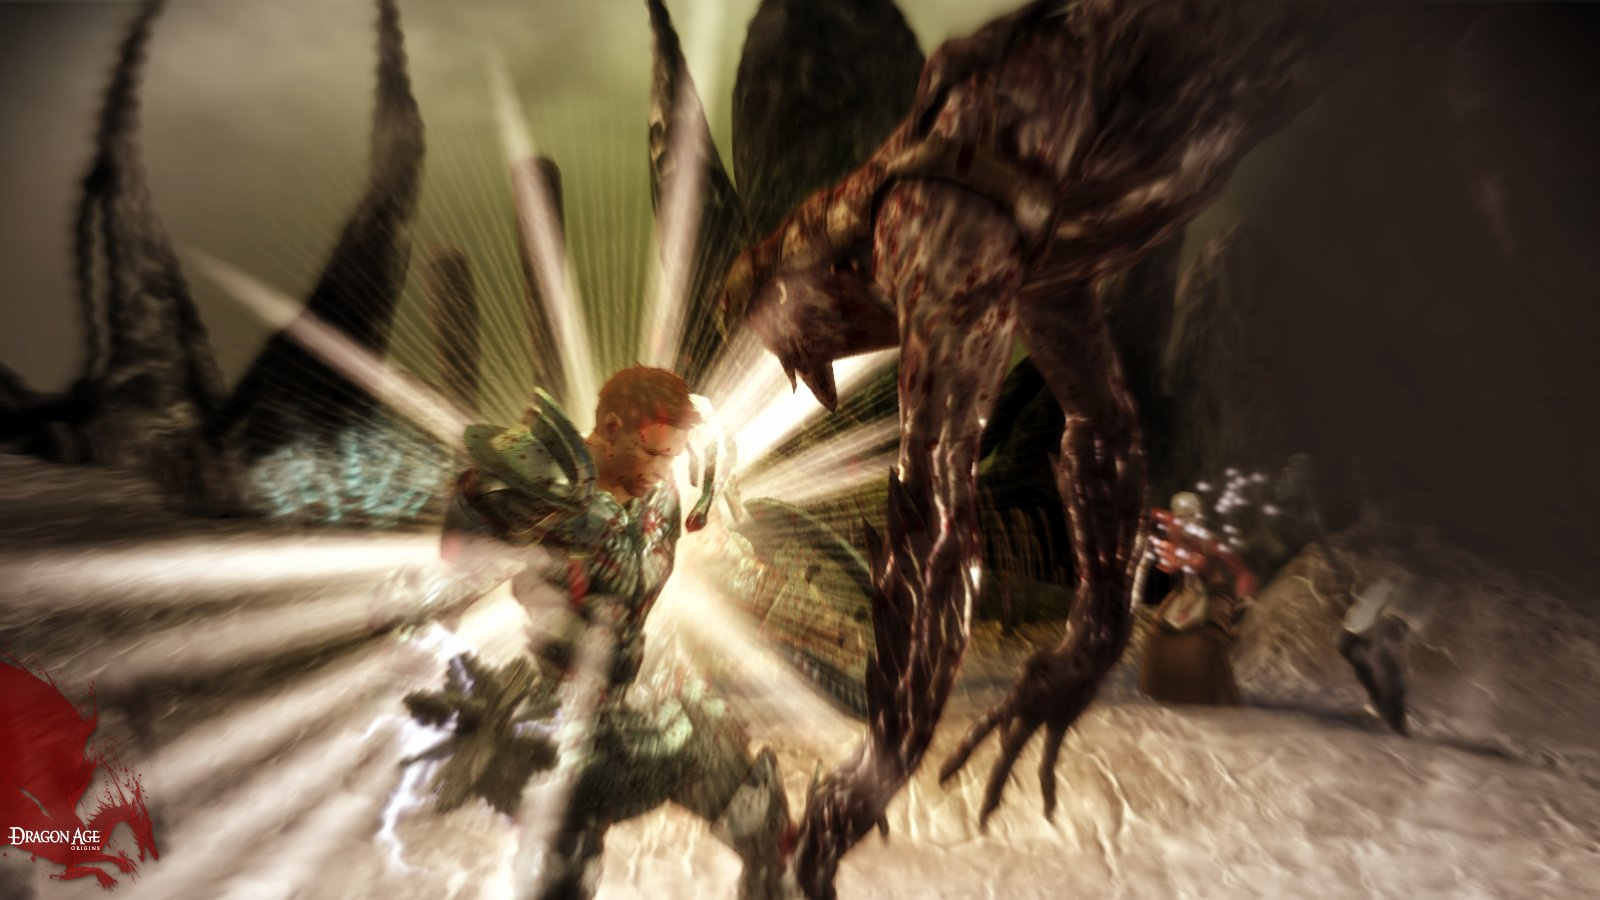 Dragonchasers » Dragon Age: Origins — The Assassin